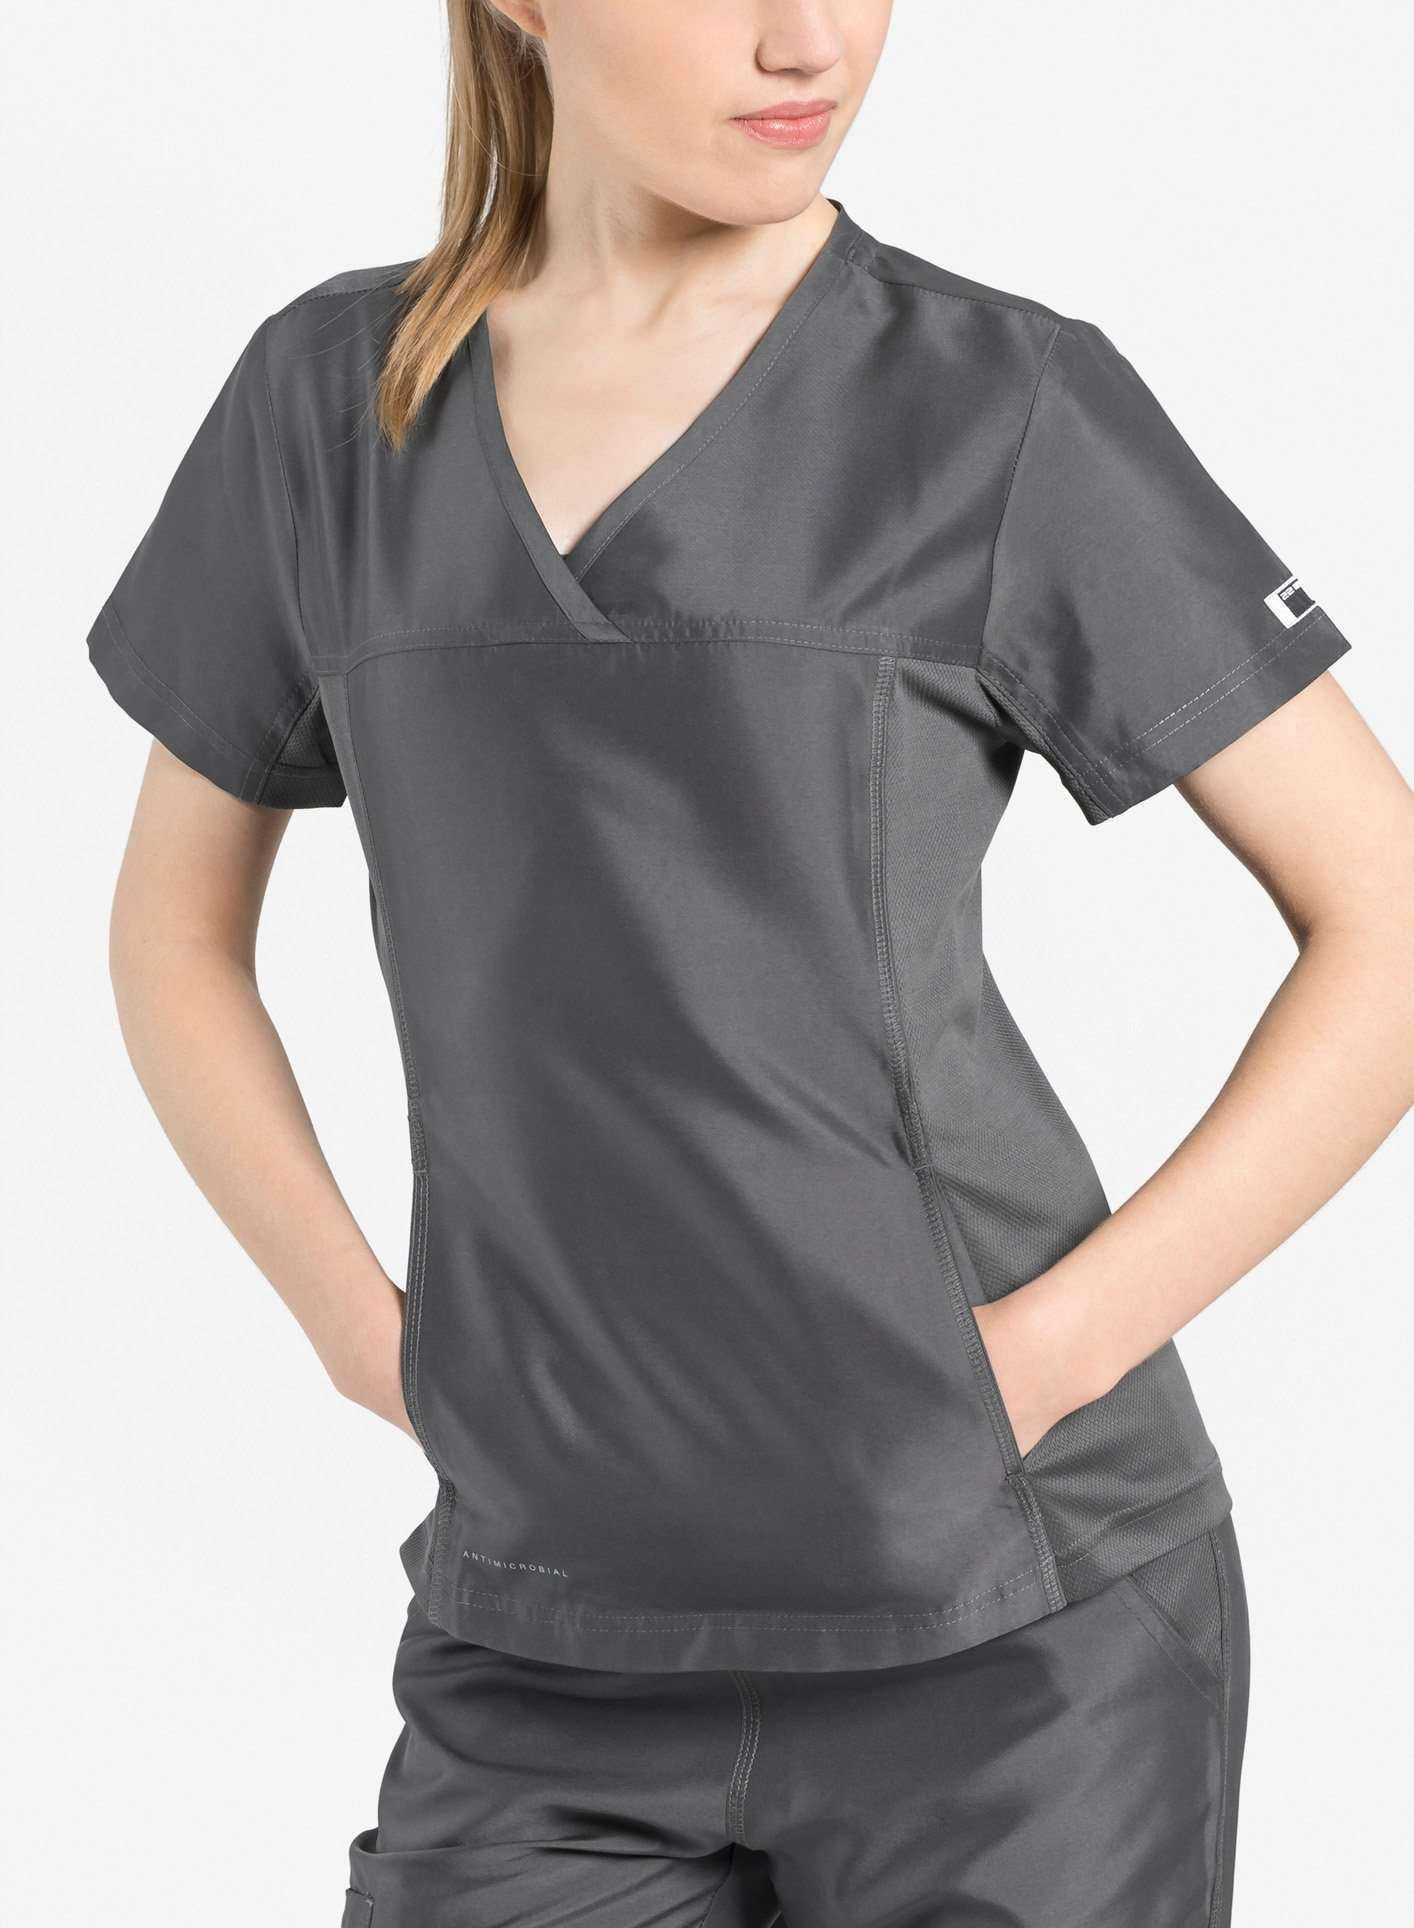 womens Elements short sleeve hidden pocket scrub top dark grey